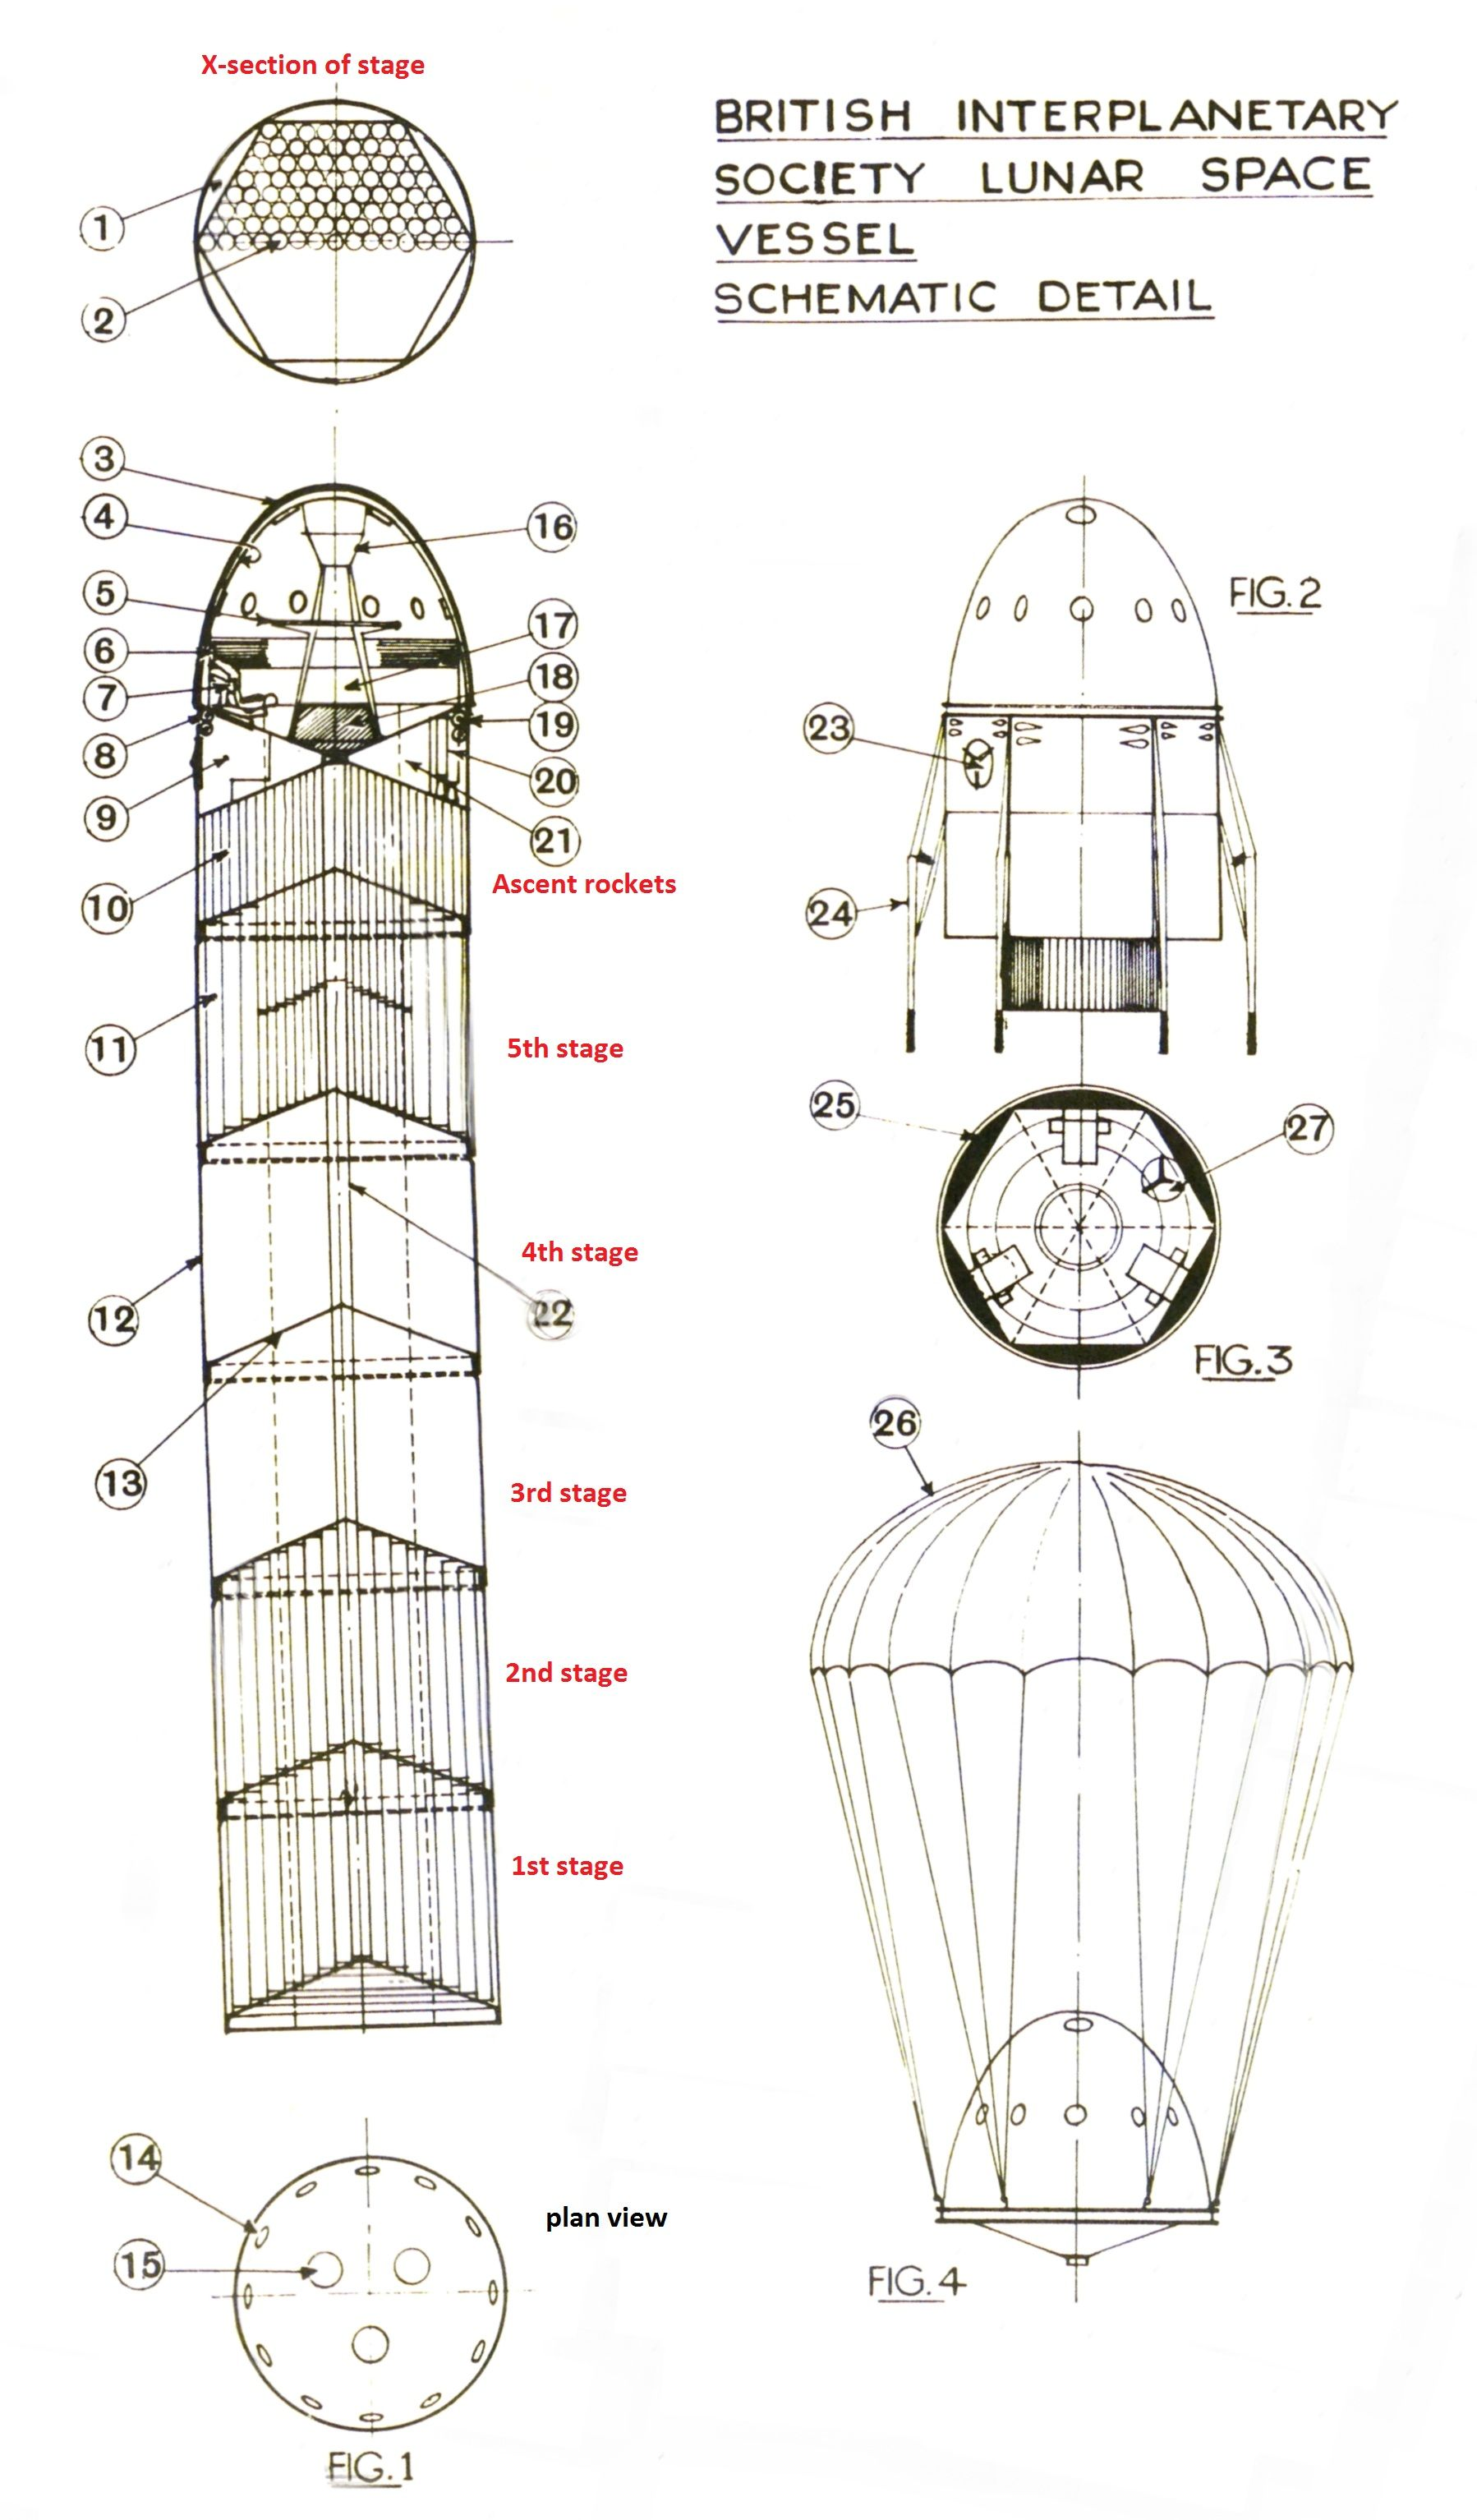 small resolution of 1939 schematic of a 5 stage rocket spaceship to land on and return from the moon by the british interplanetary society artist r a smith